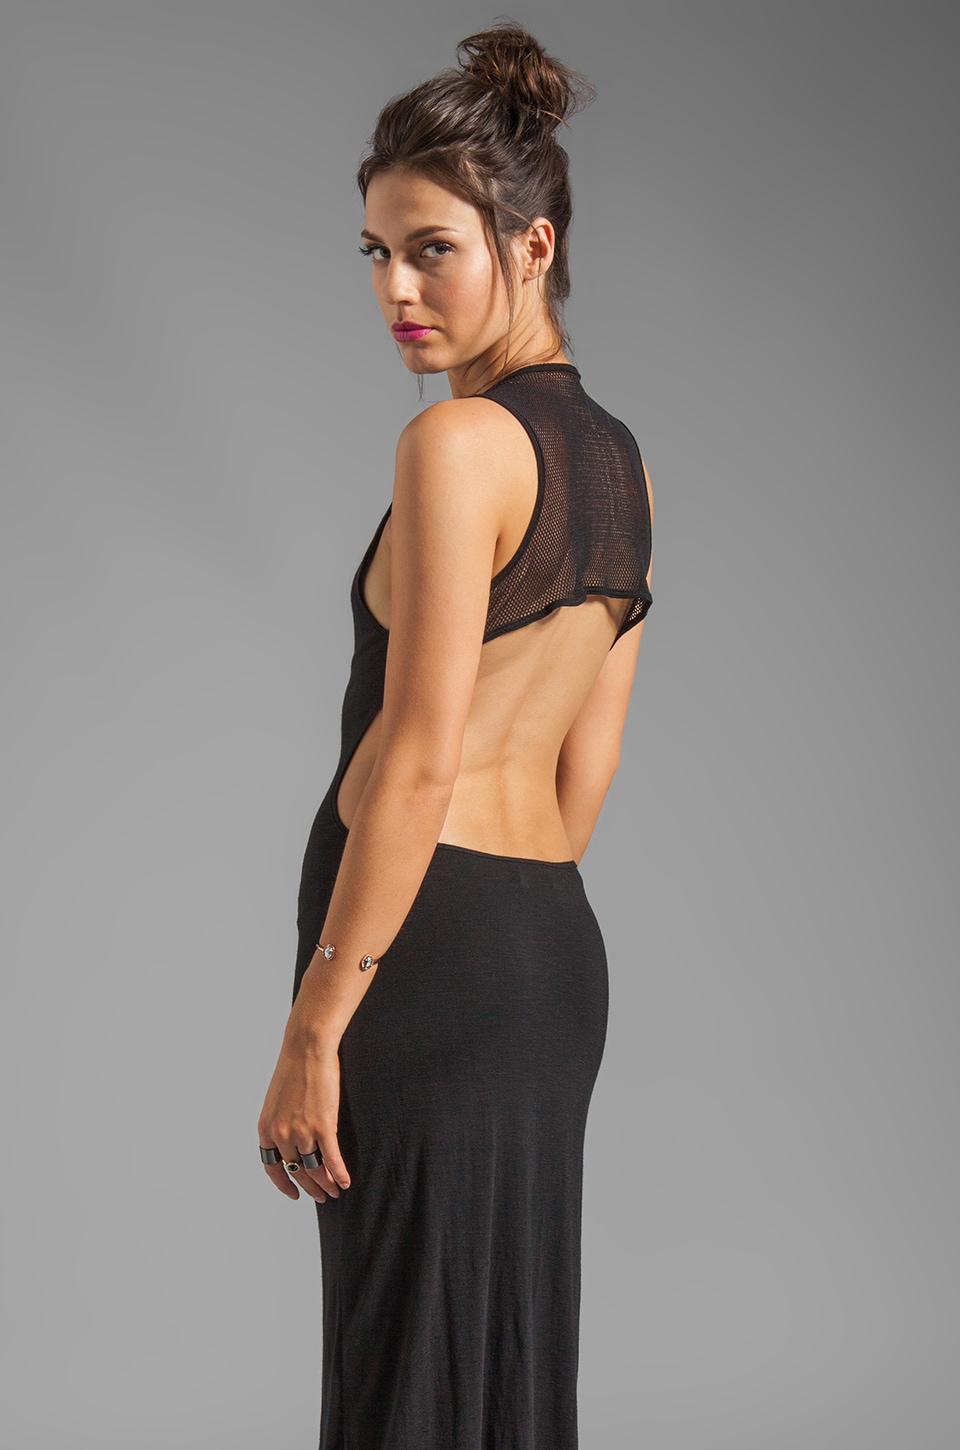 Pencey Standard Olympic Mesh Cut Out Dress in Black